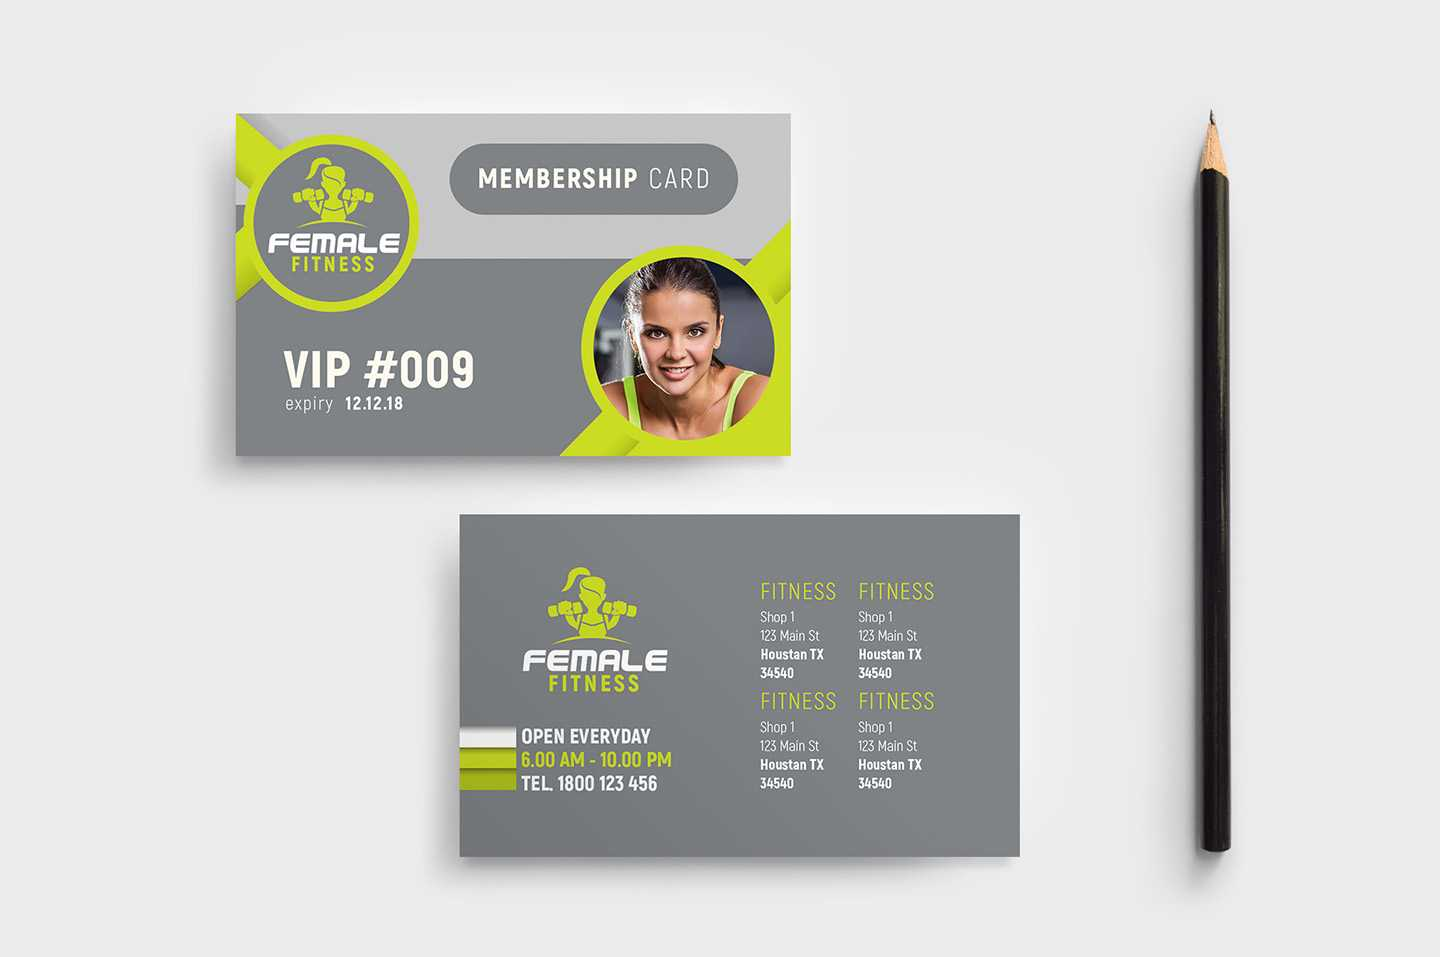 Female Fitness Membership Card Template In Psd, Ai & Vector With Regard To Gym Membership Card Template